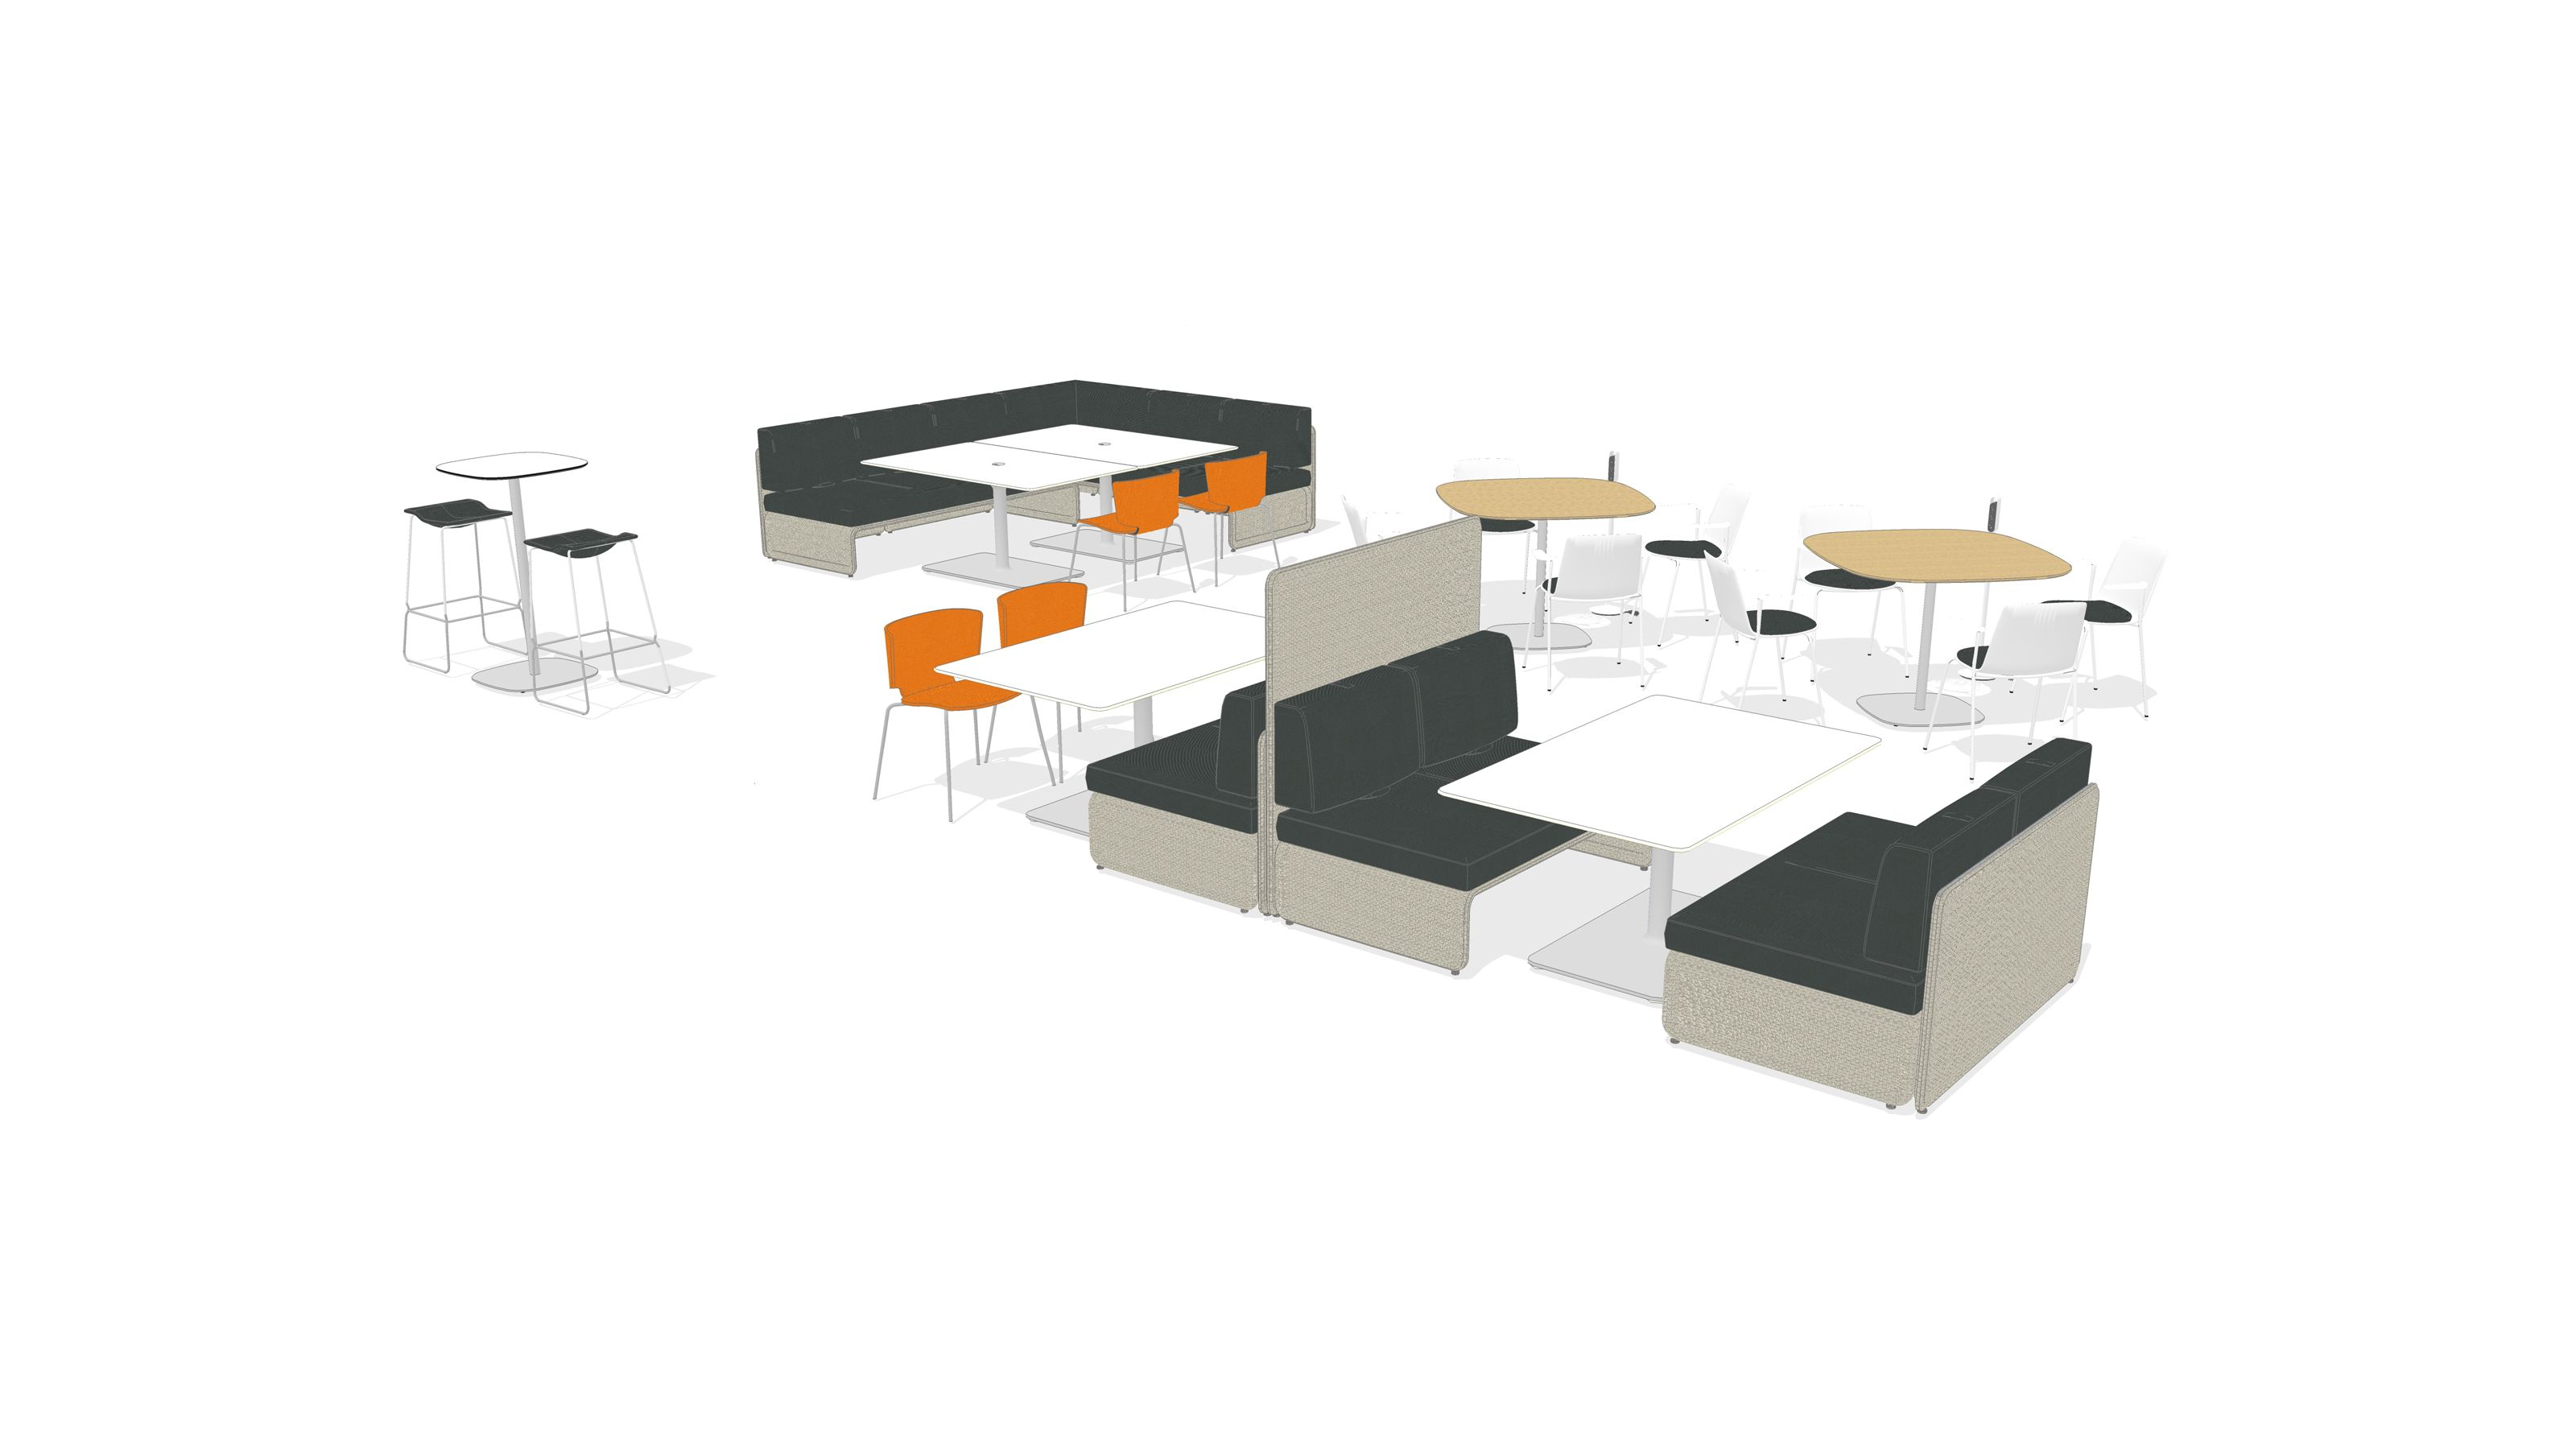 With a range of settings and postures, this is a great place for individuals to socialize with others, eat and